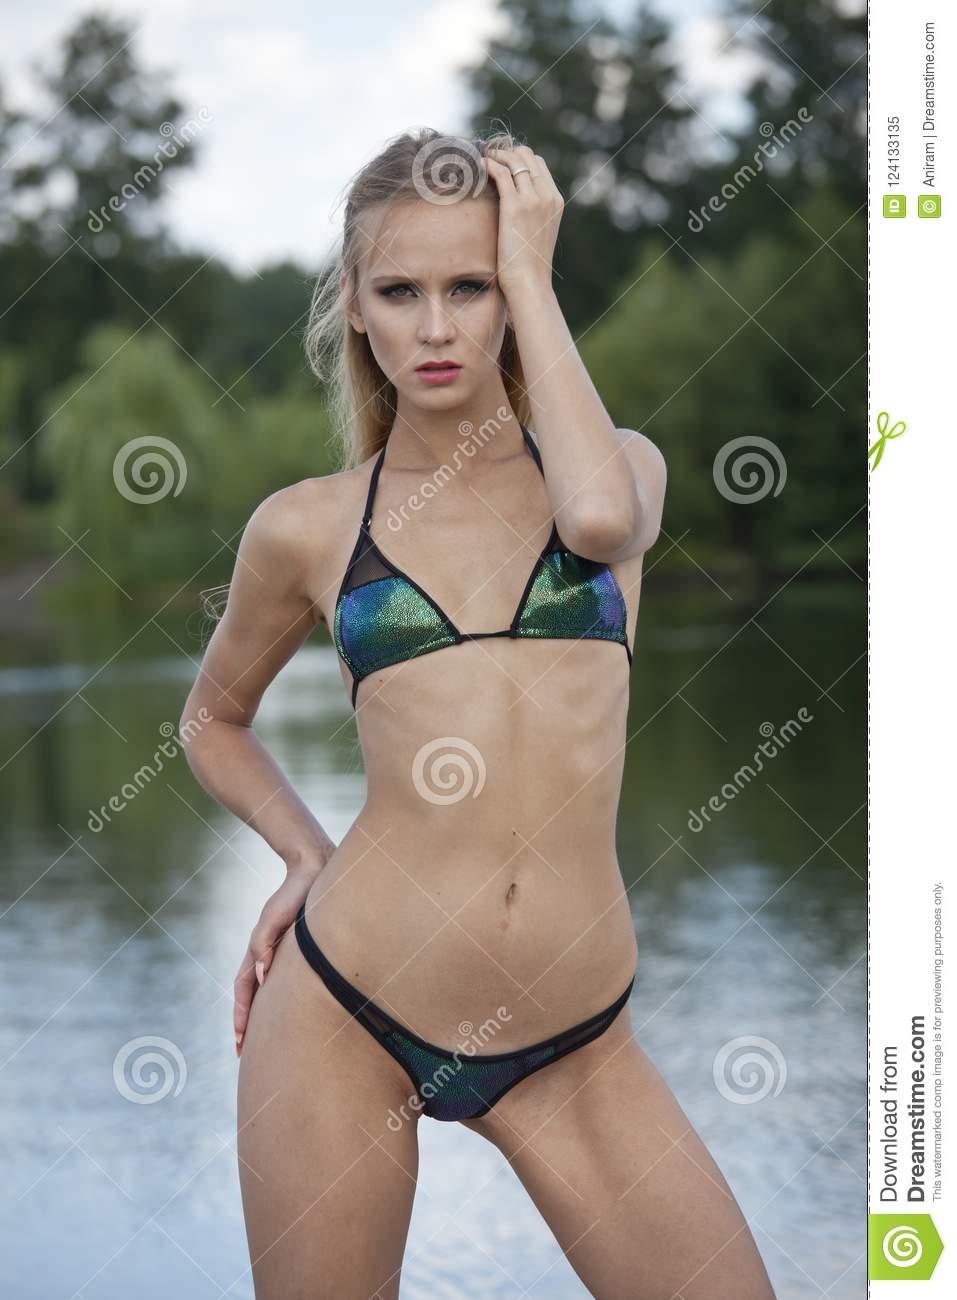 amateur woman Outdoor bikini